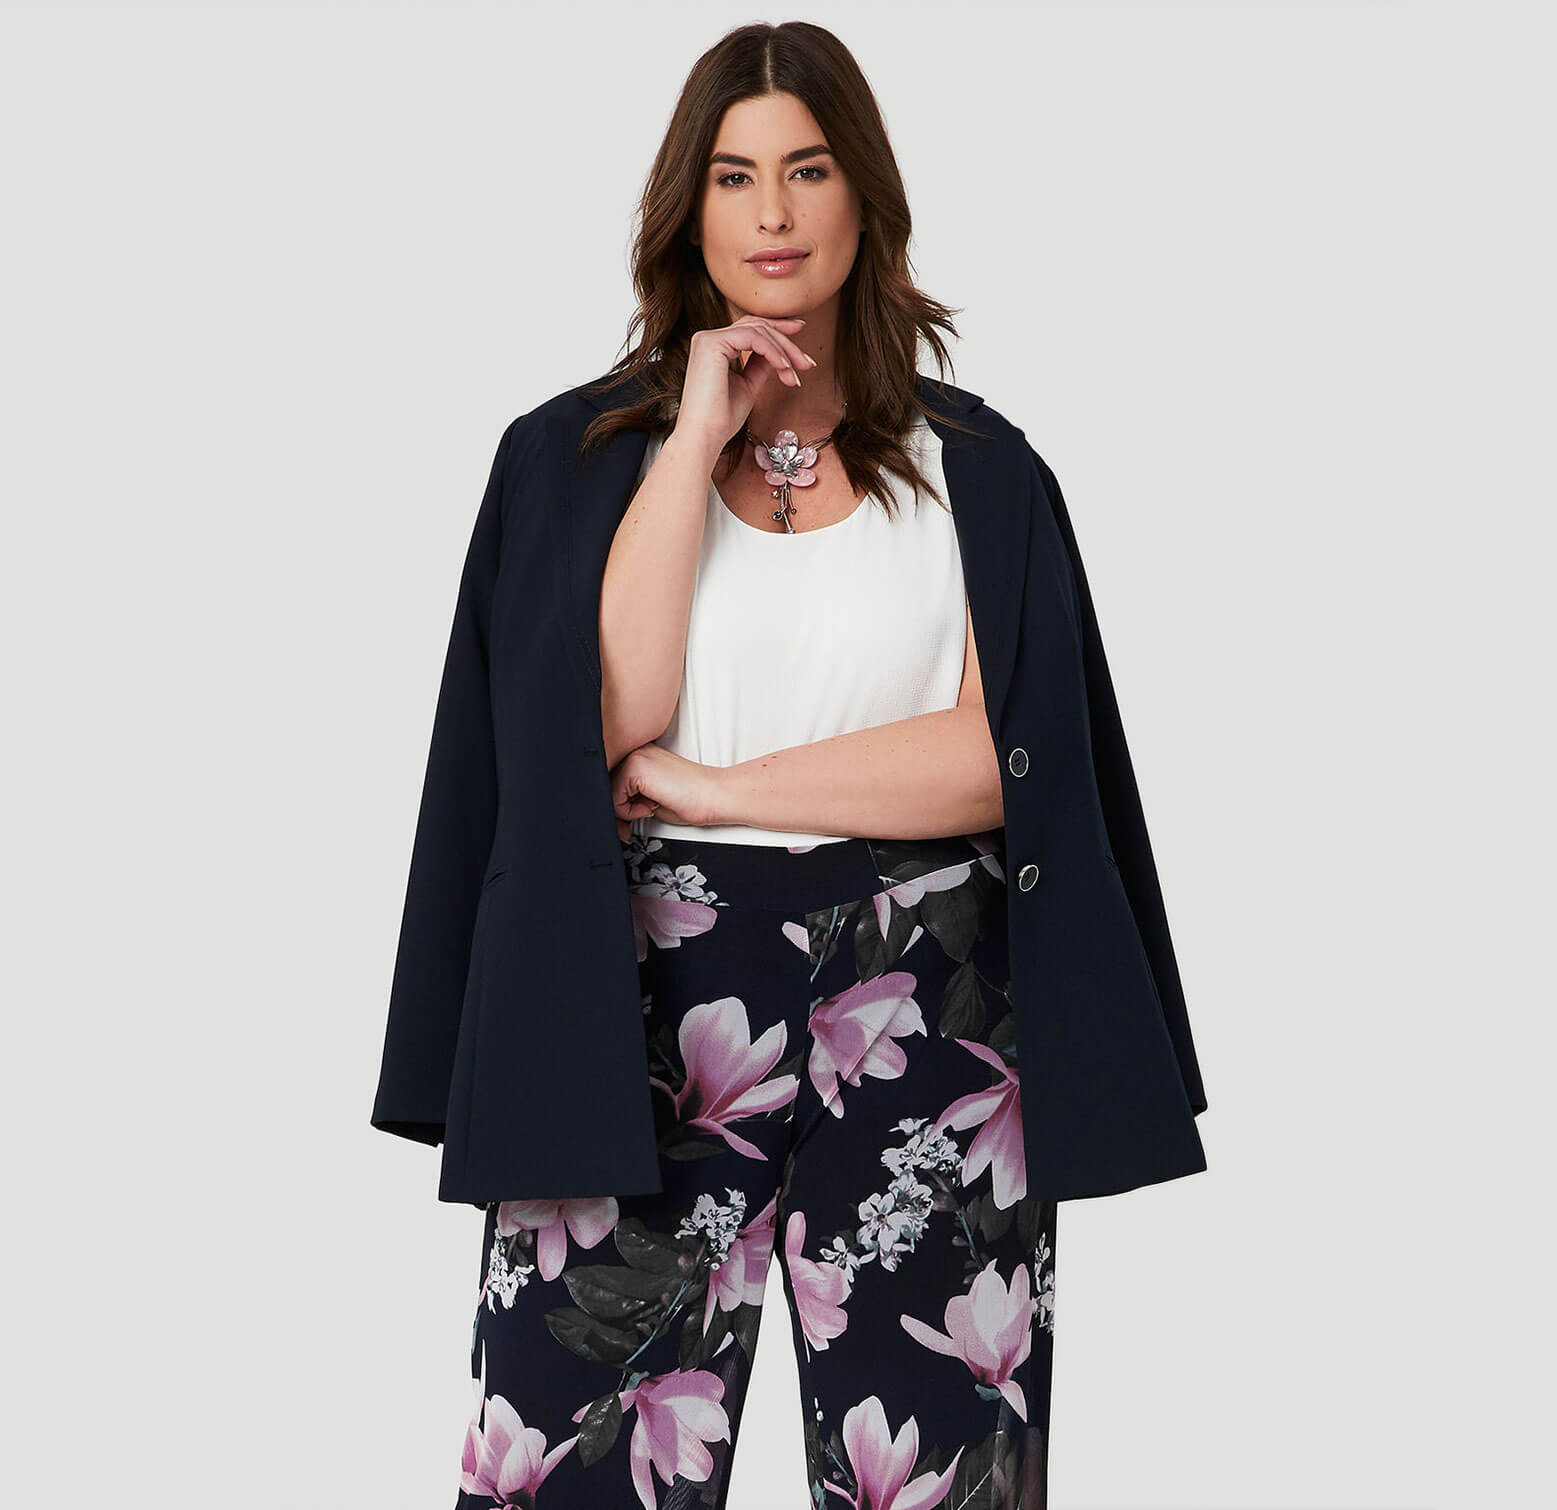 8d2e5d0ea99 Women s Clothing to Fit Every Size